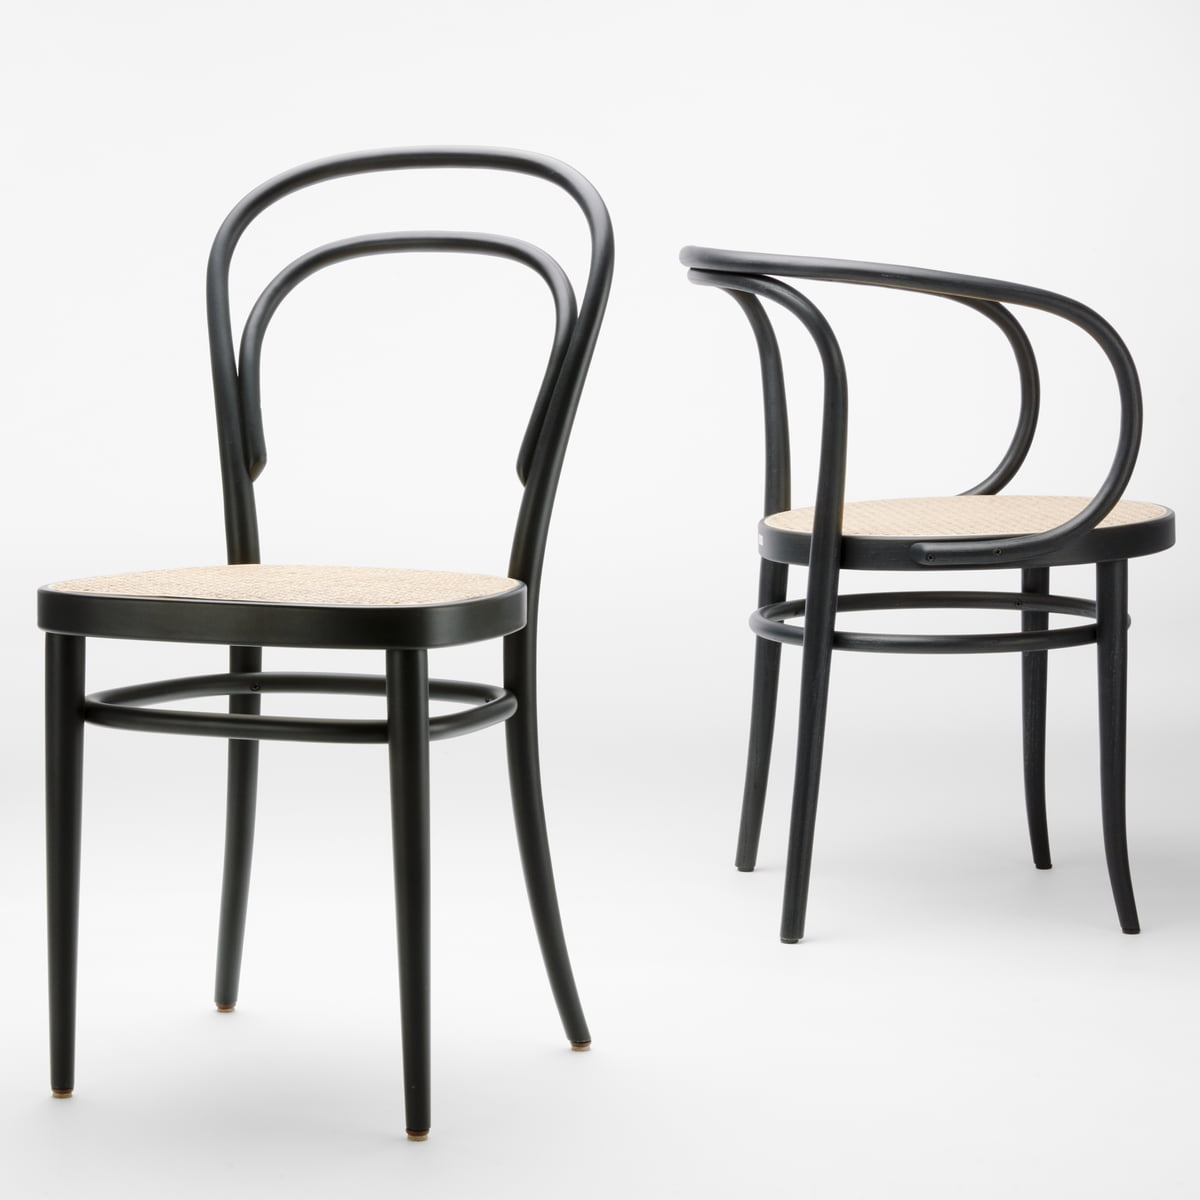 Delicieux Coffee House Chairs 209 And 214 By Thonet